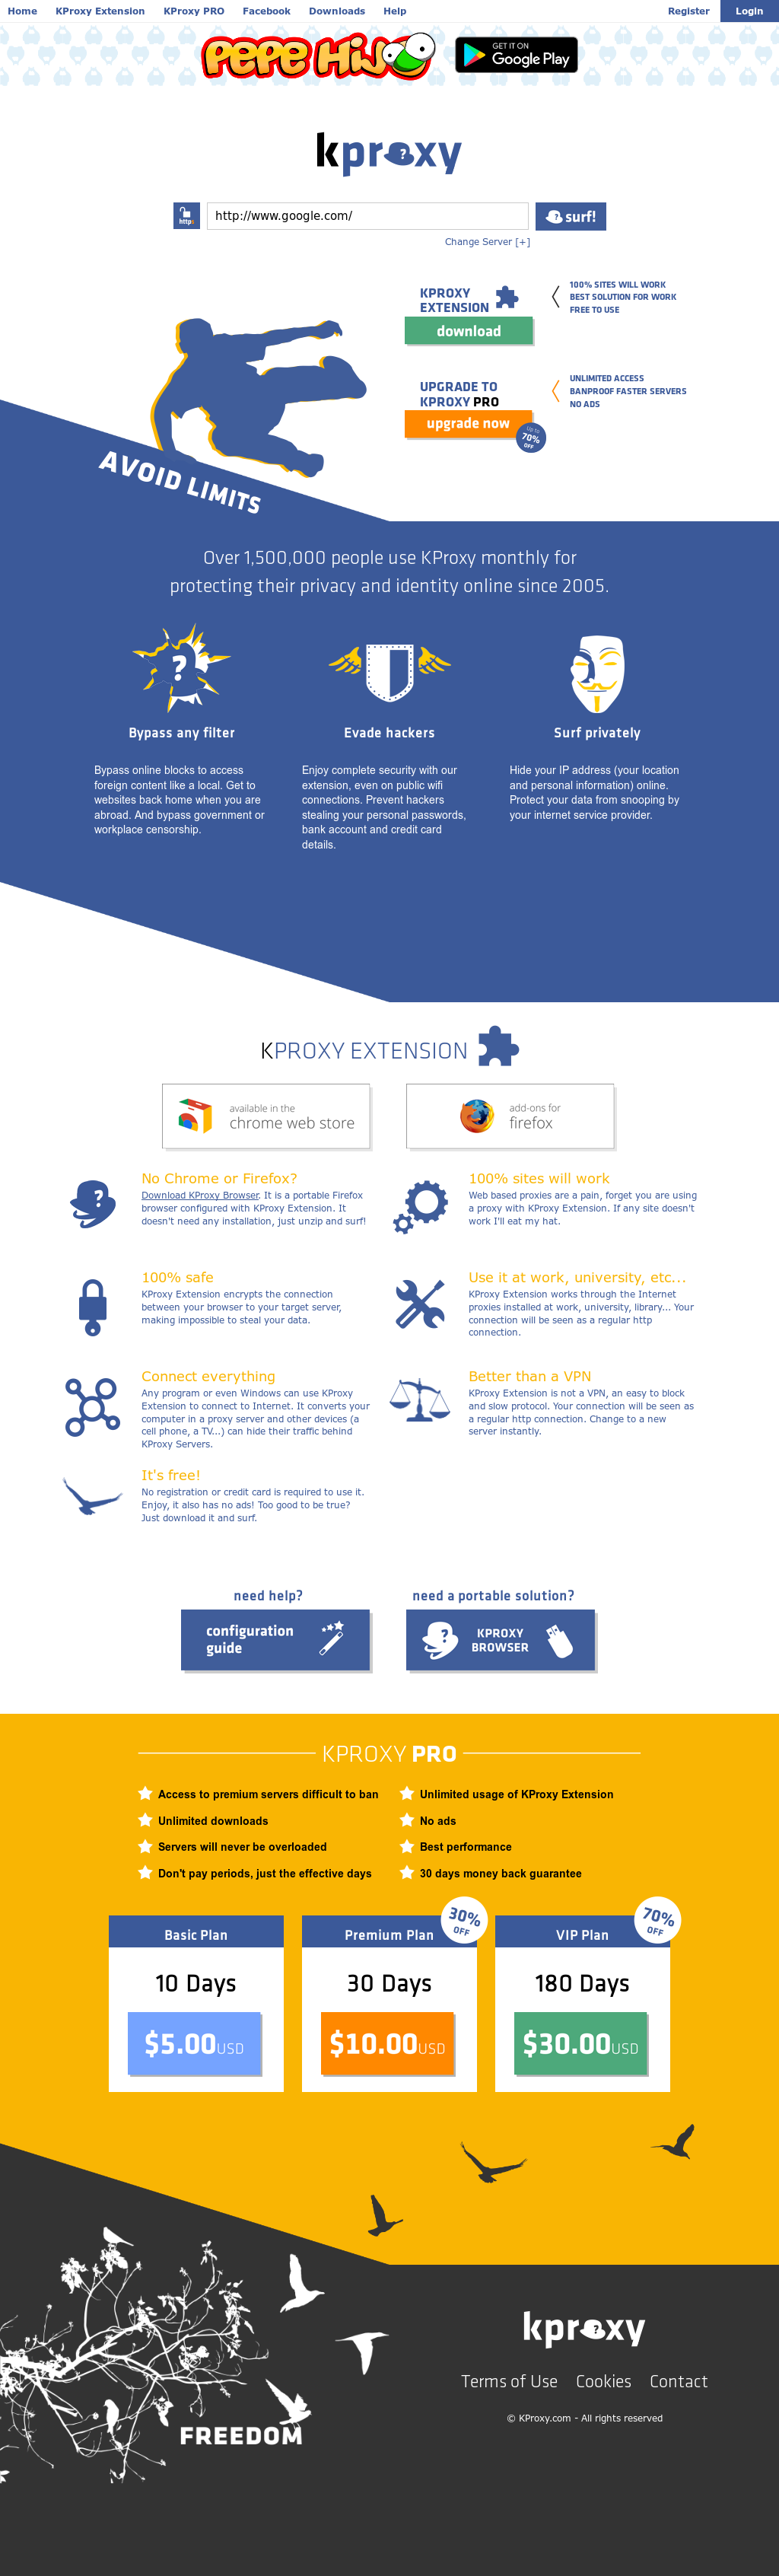 KProxy Competitors, Revenue and Employees - Owler Company Profile